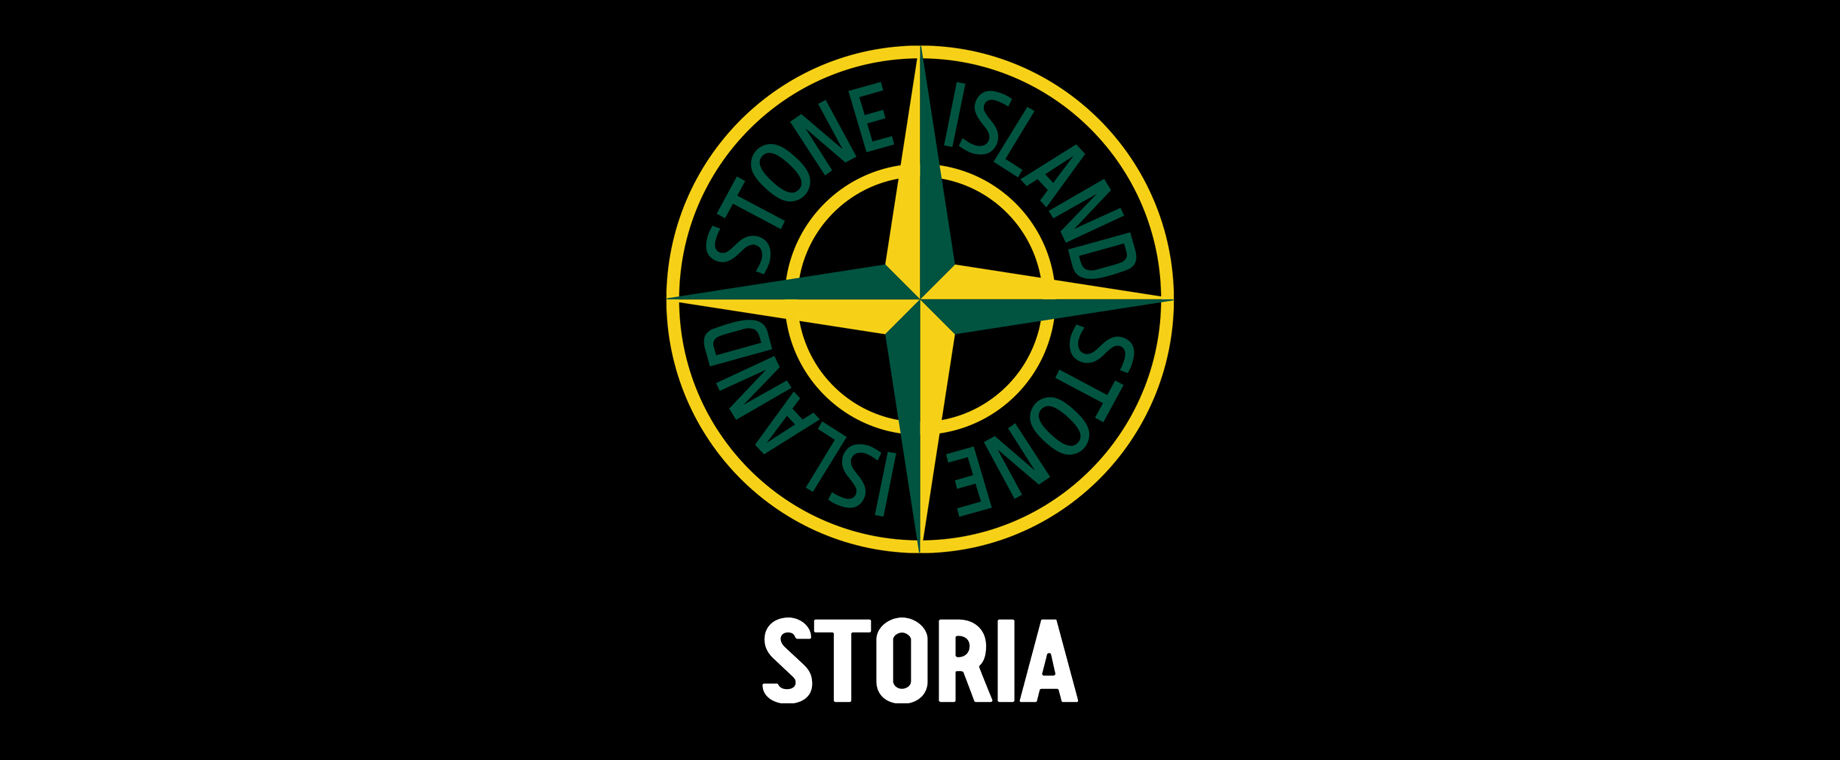 Green and yellow Stone Island compass logo and white lettering Storia against a black background.